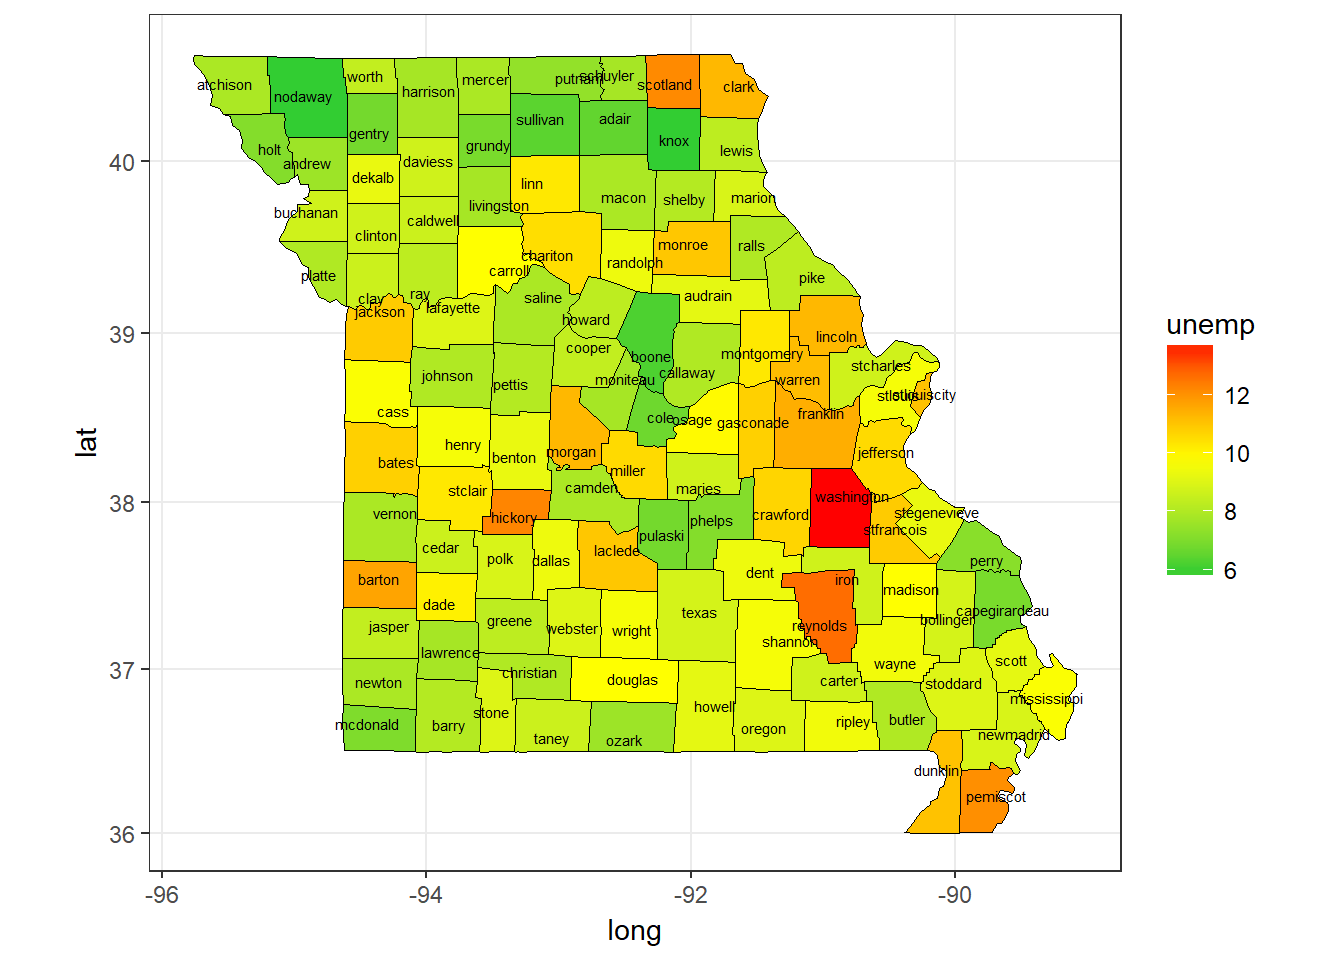 Missouri Unemployment Rate by County, 2009